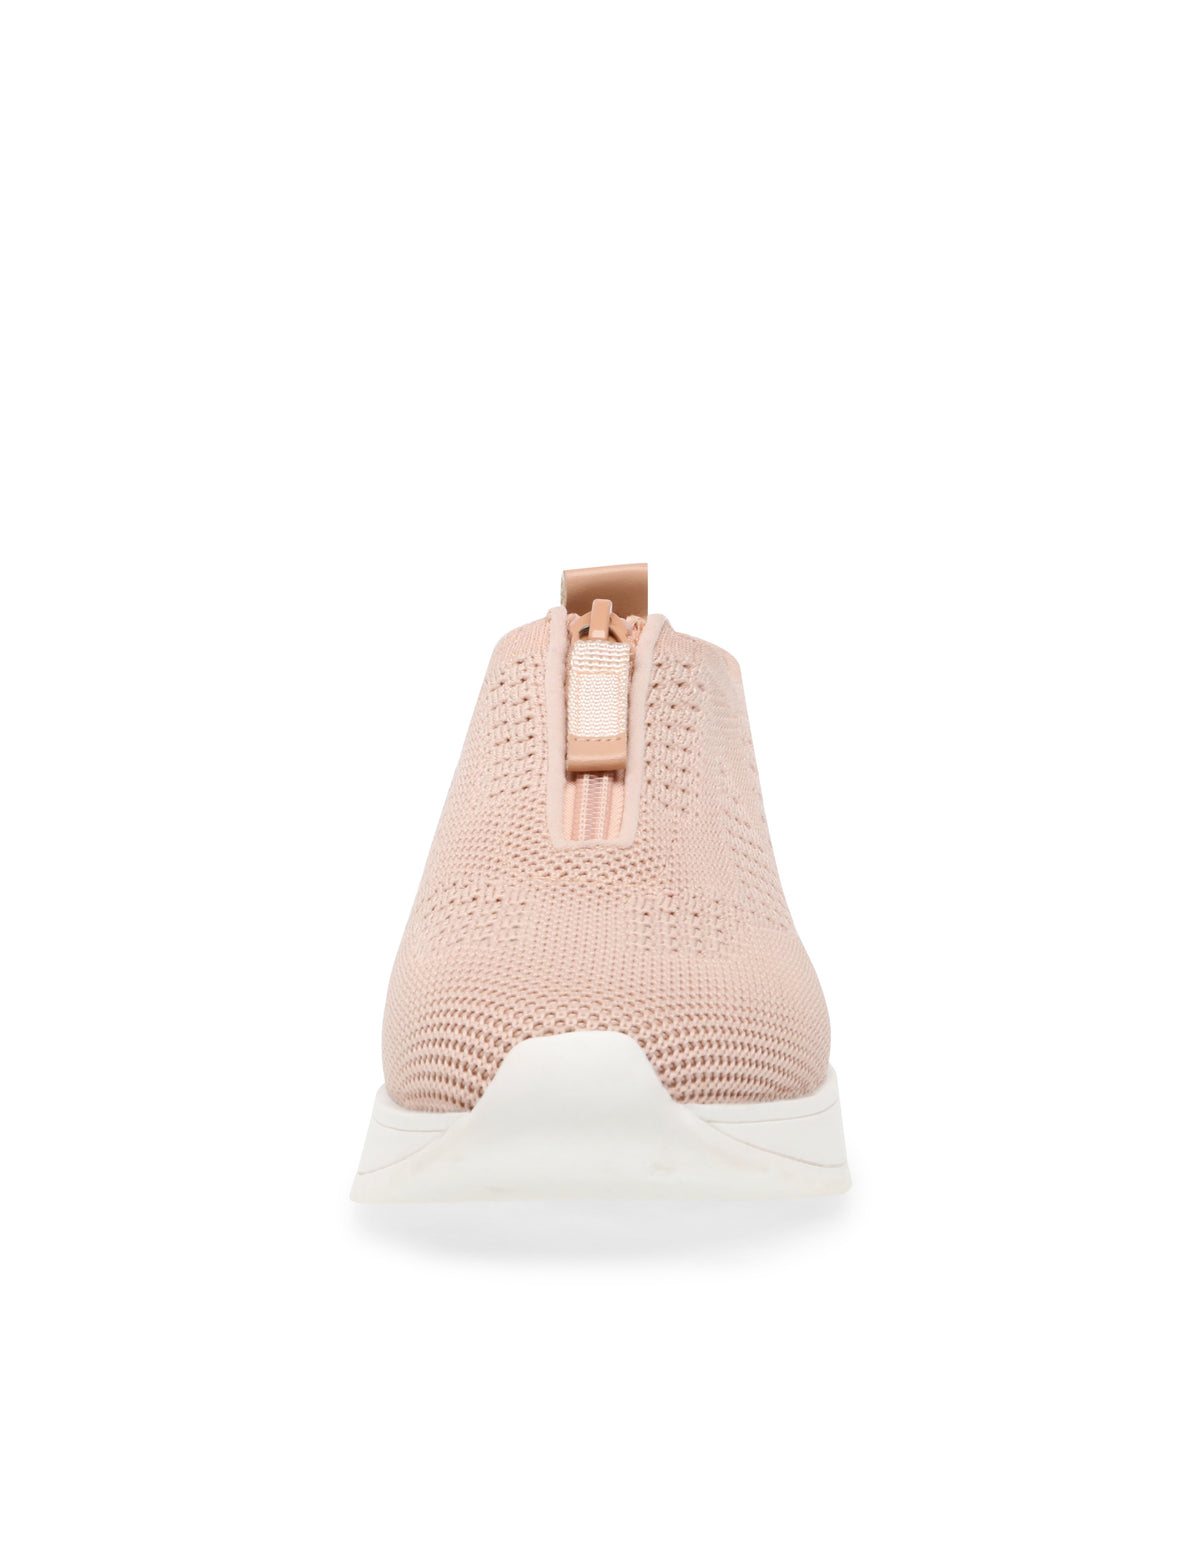 Anne Klein Terri Zip Front Knit Sneaker in Blush